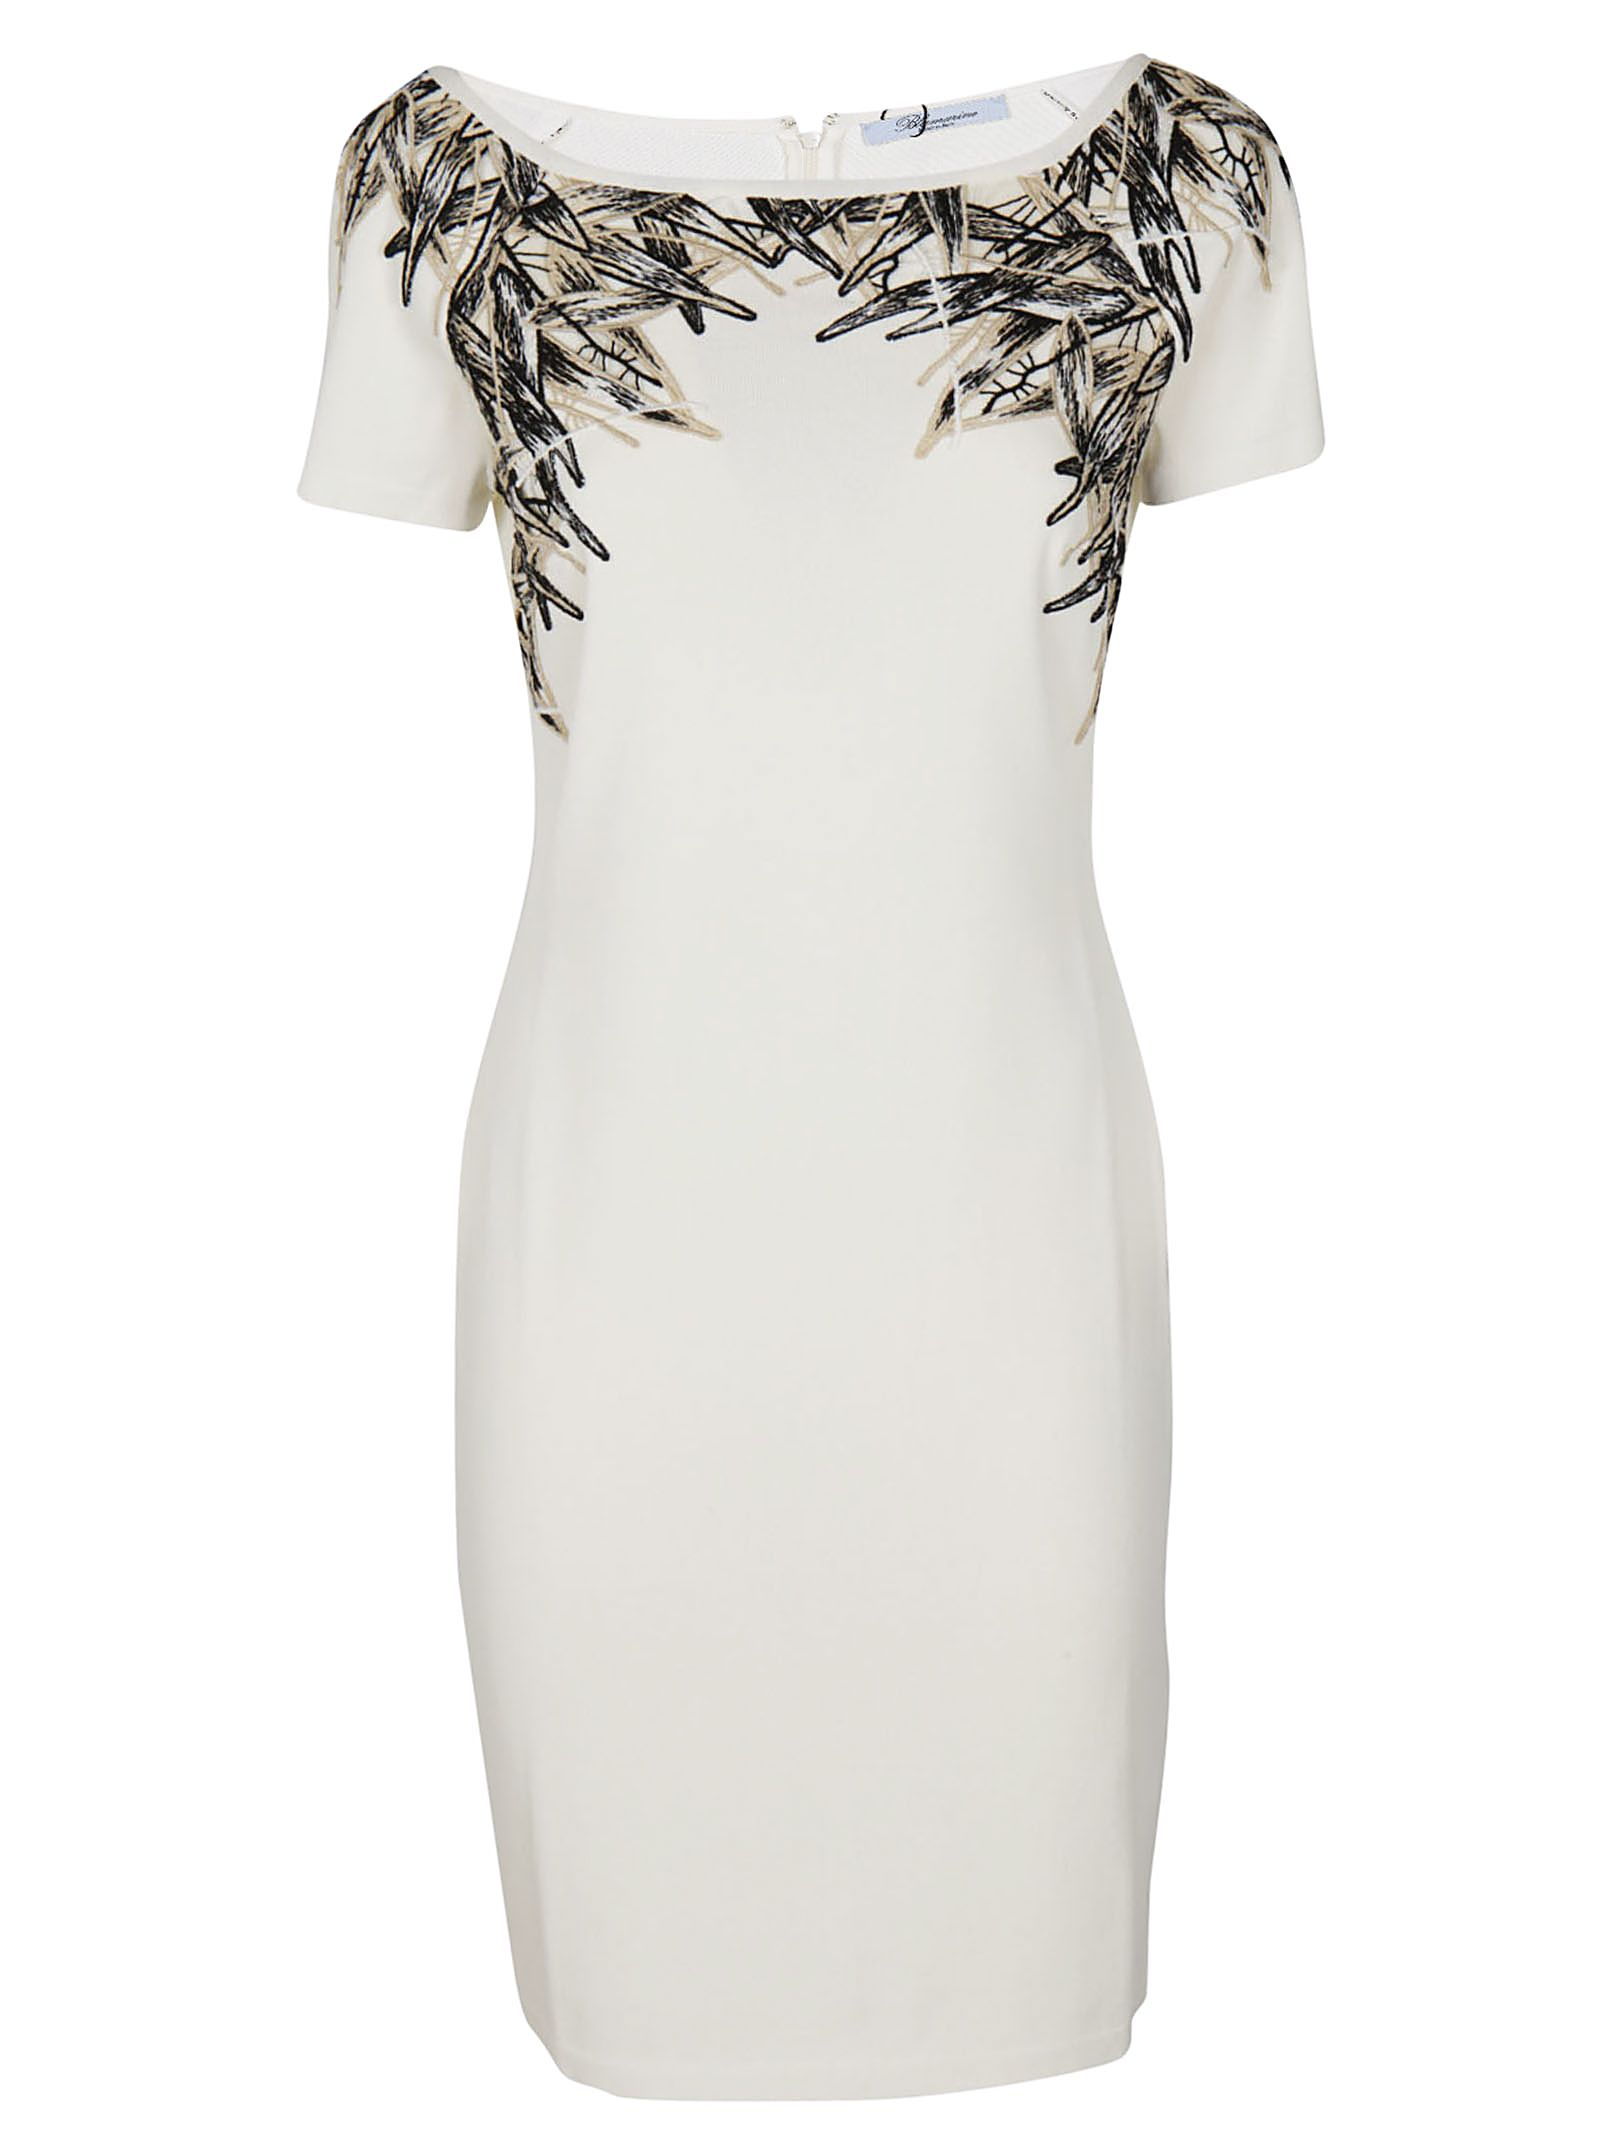 Blumarine Bamboo Dress